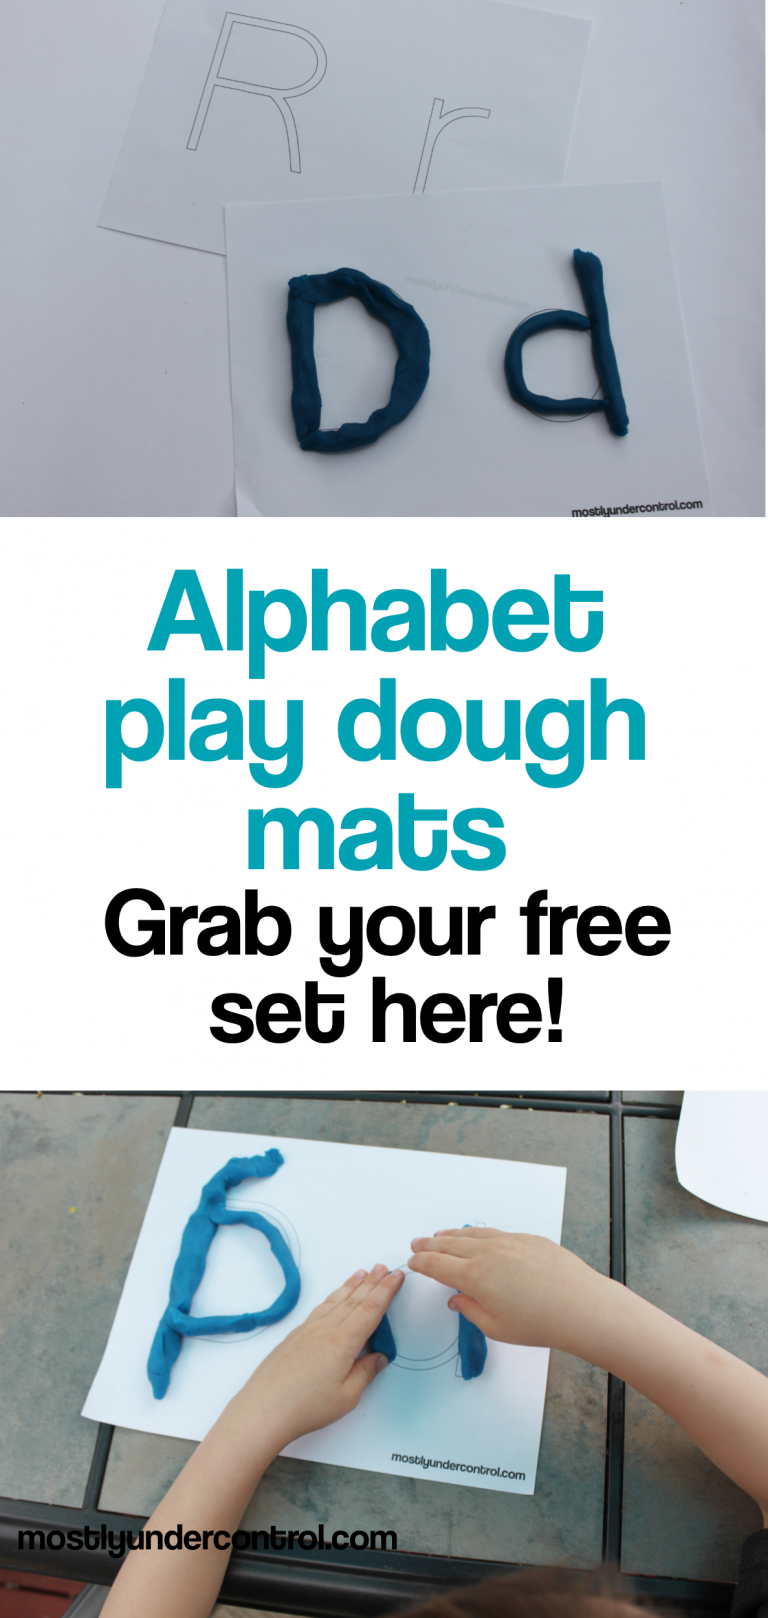 alphabet play dough mats - grab your free set here!